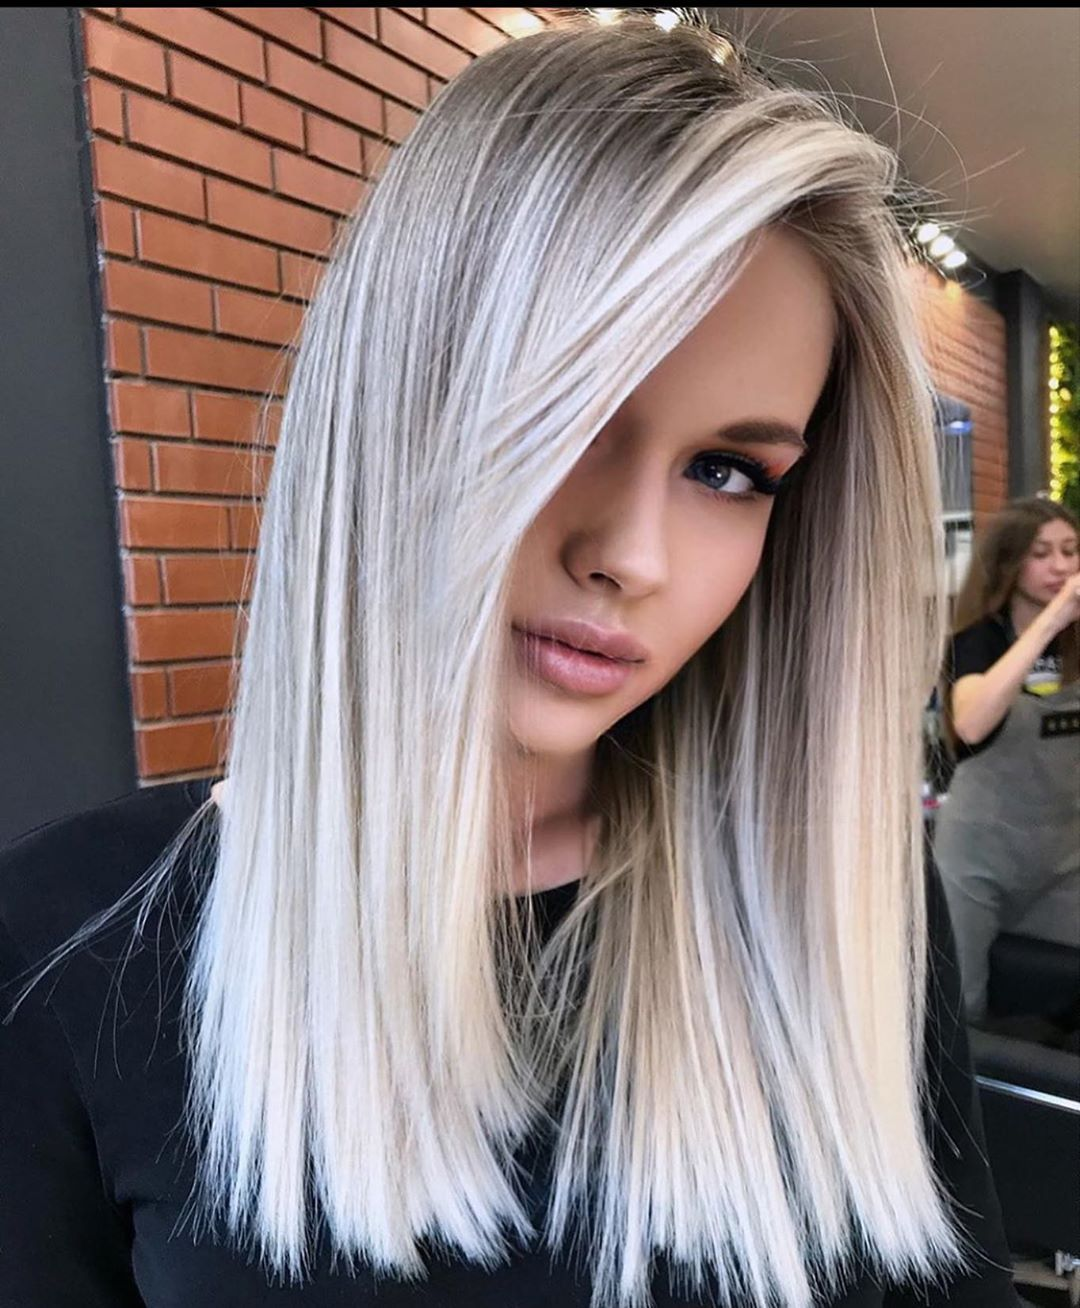 Medium Length Hairstyle and Color - Shoulder Length Hairstyles and Haircuts in 2021